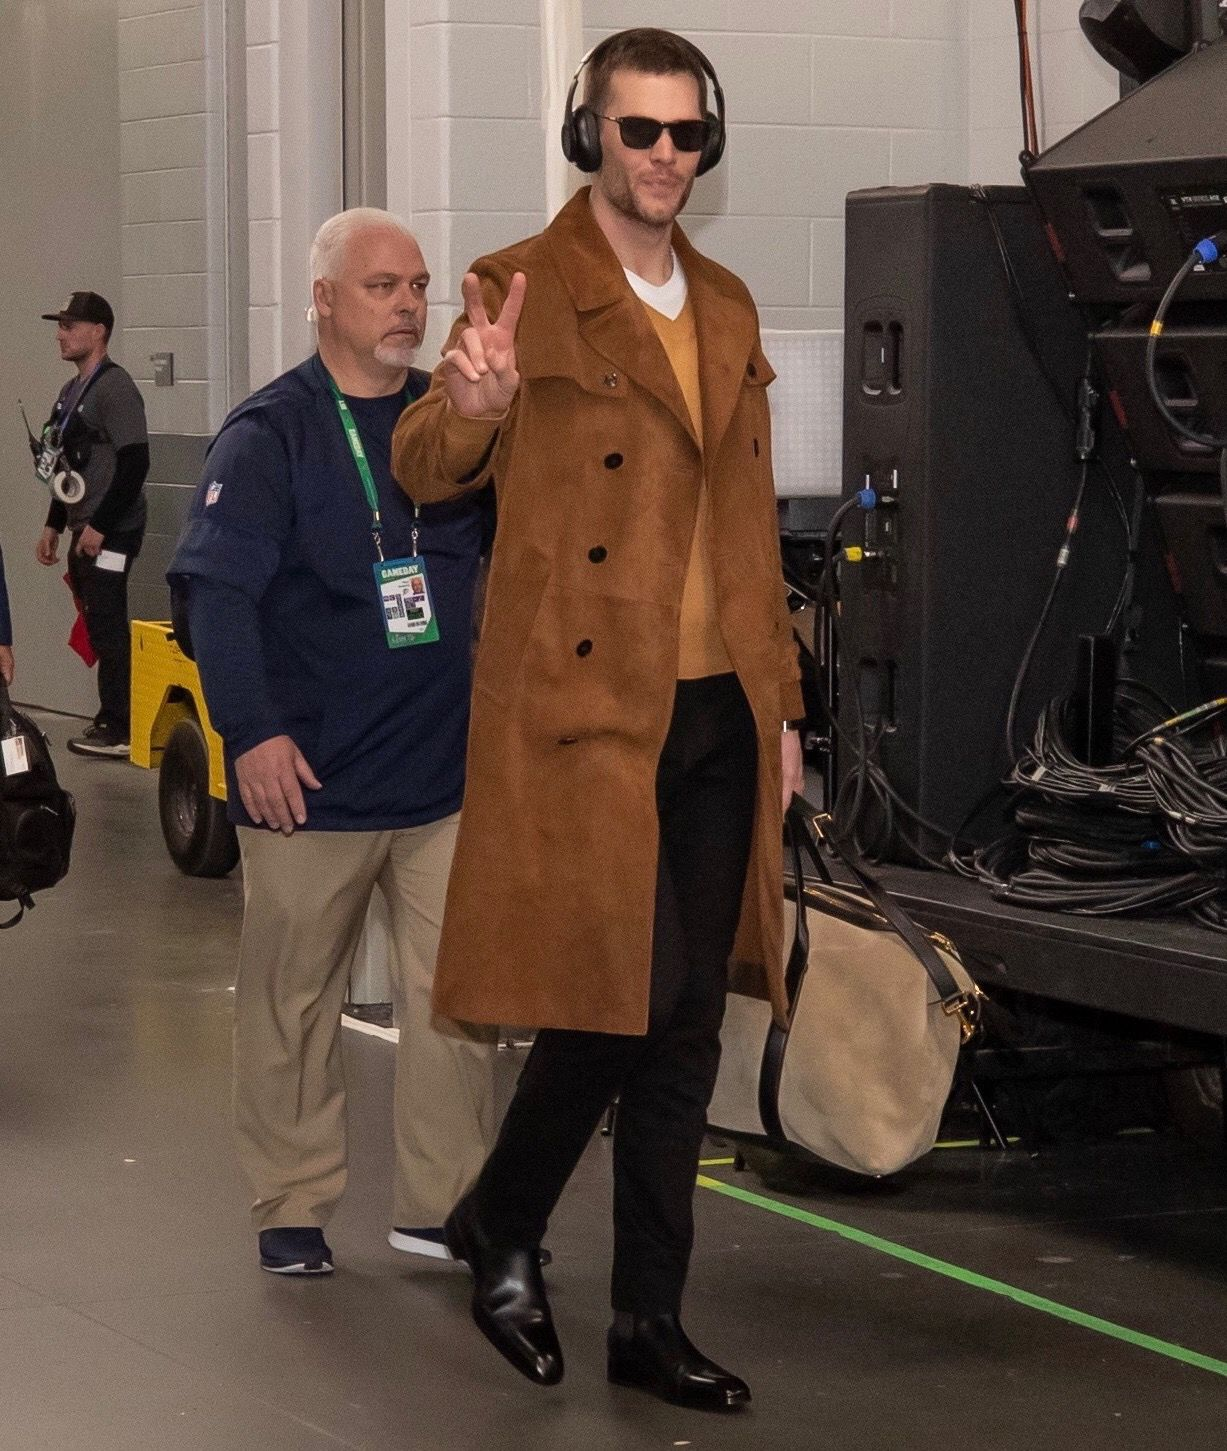 Tom Brady Wore Tom Ford And Carried A Buckley Tote To His Arrival At Super Bowl Liii In Atlanta Tomford Tom Brady Tom Ford Tom Brady Nfl